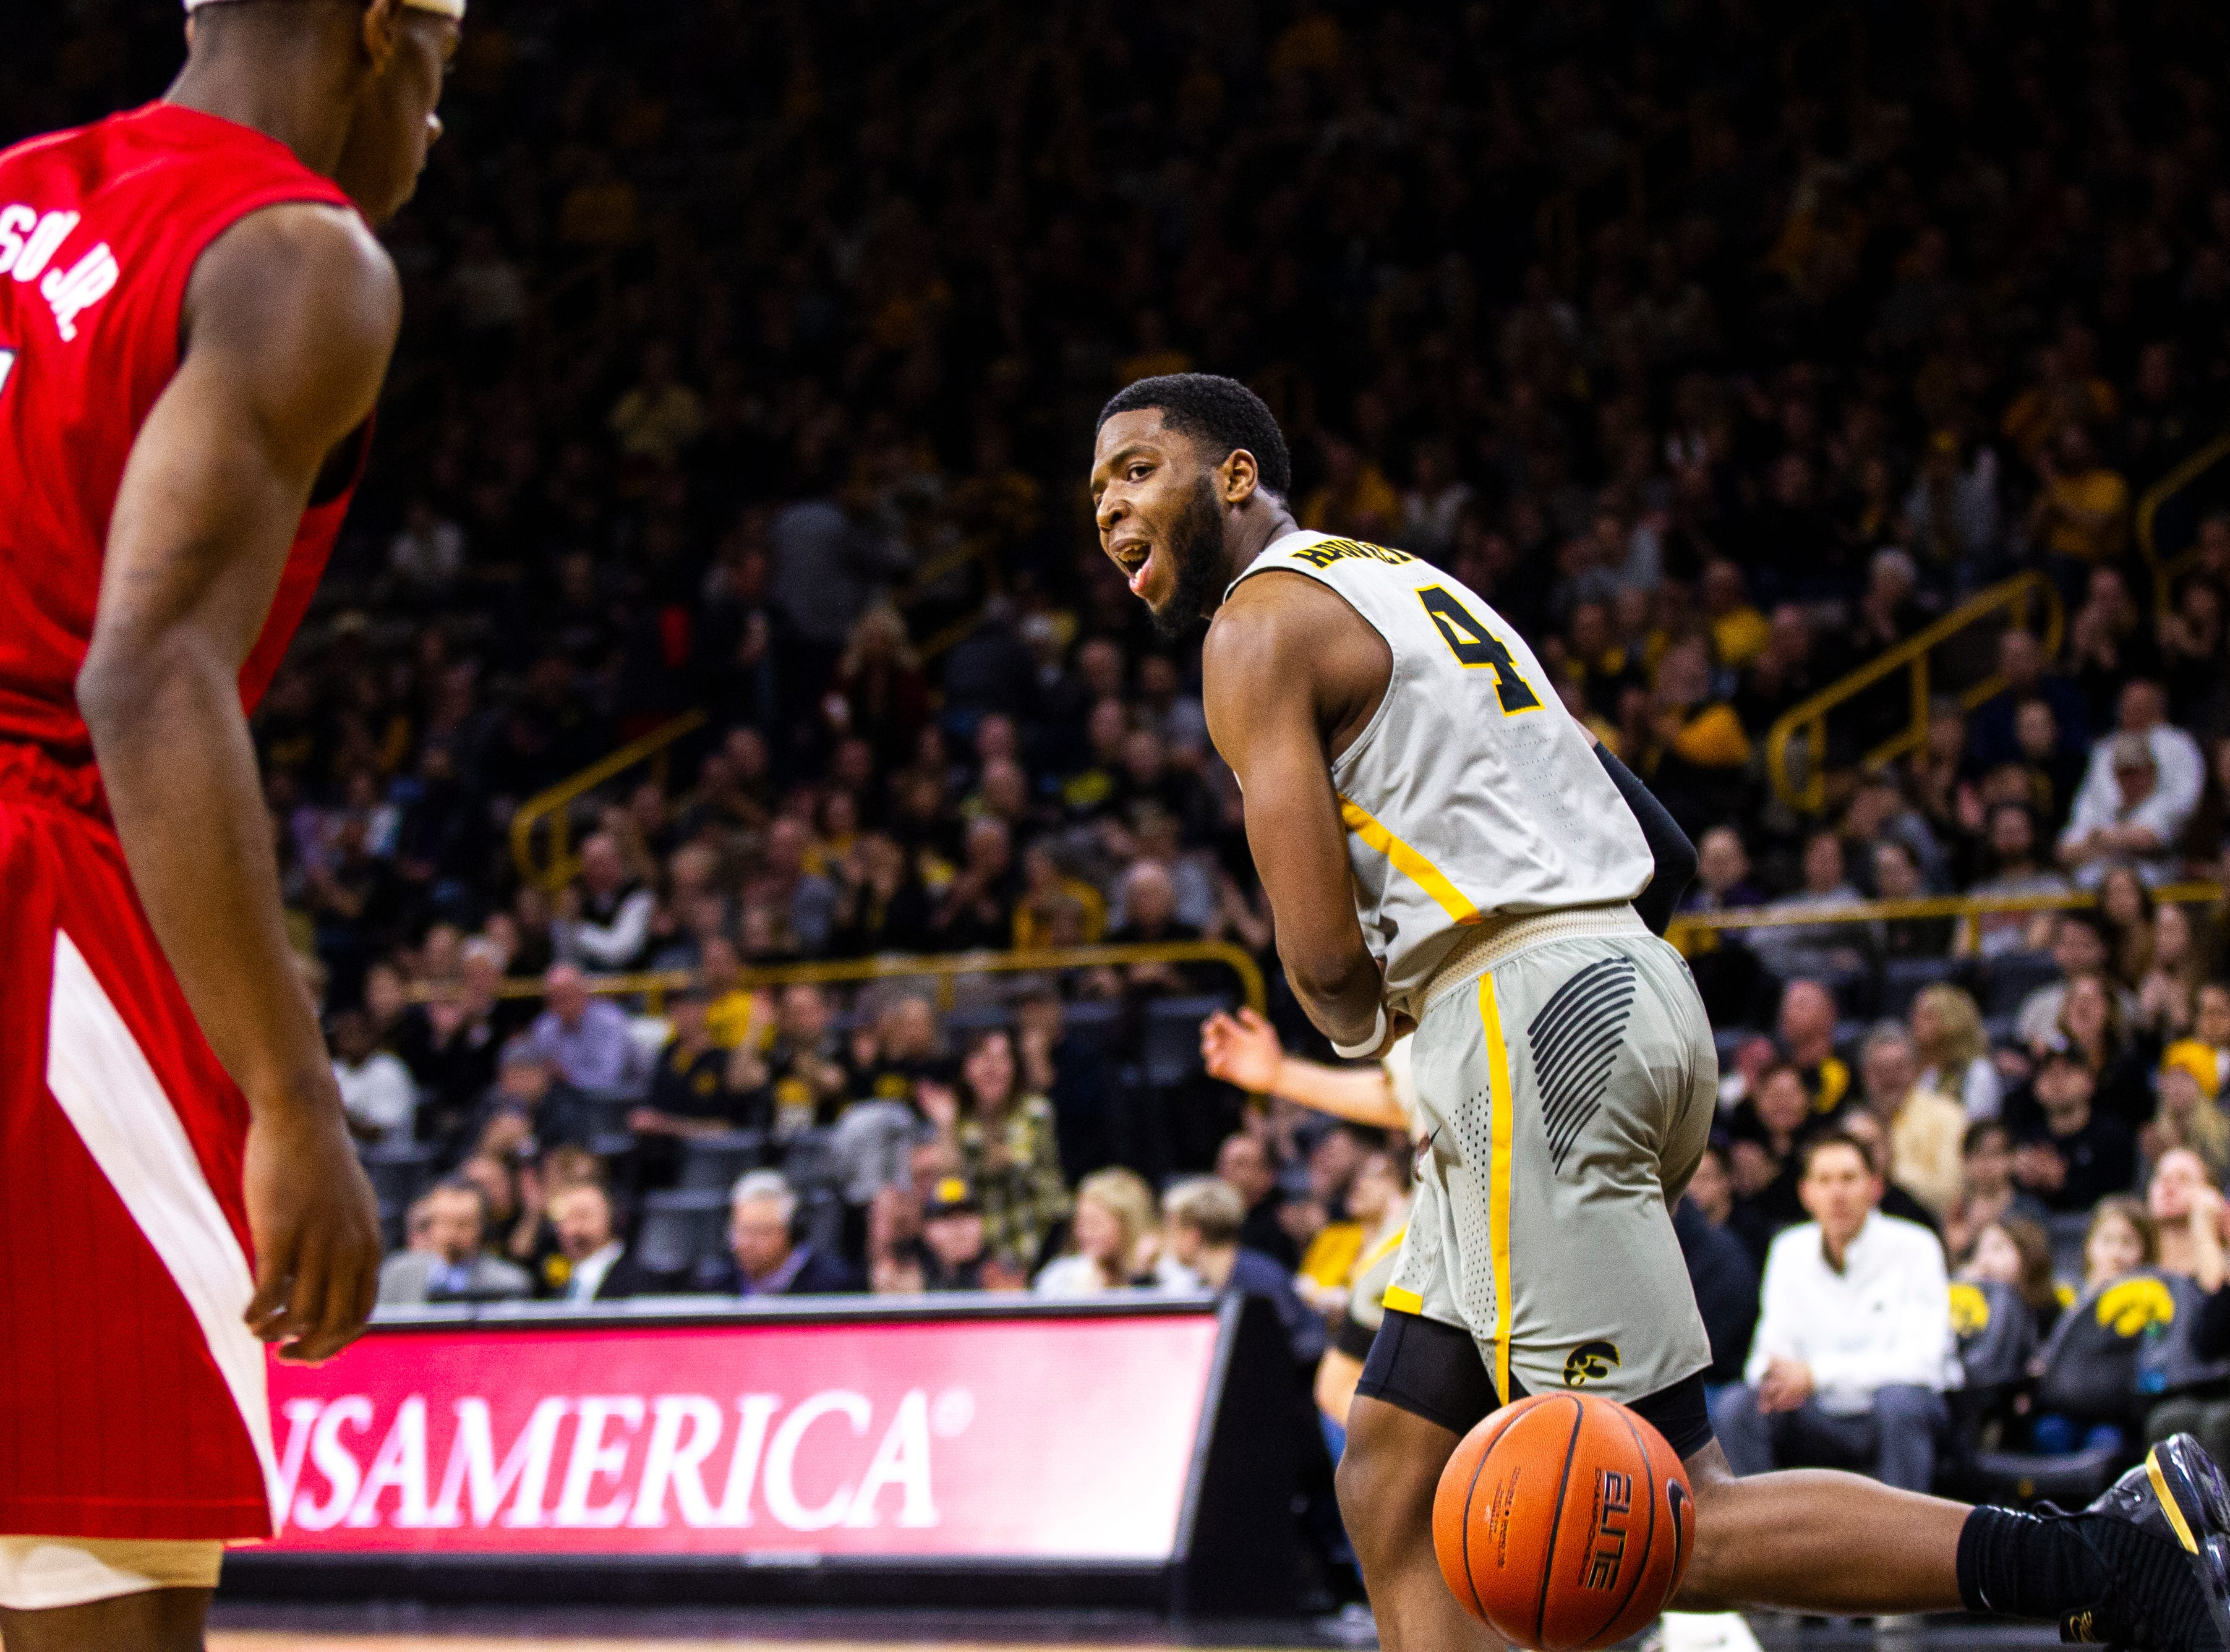 Iowa guard Isaiah Moss (4) reacts after making a layup past Nebraska guard Glynn Watson Jr. (5) during a NCAA Big Ten Conference men's basketball game on Sunday, Jan. 6, 2019, at the Carver-Hawkeye Arena in Iowa City, Iowa.